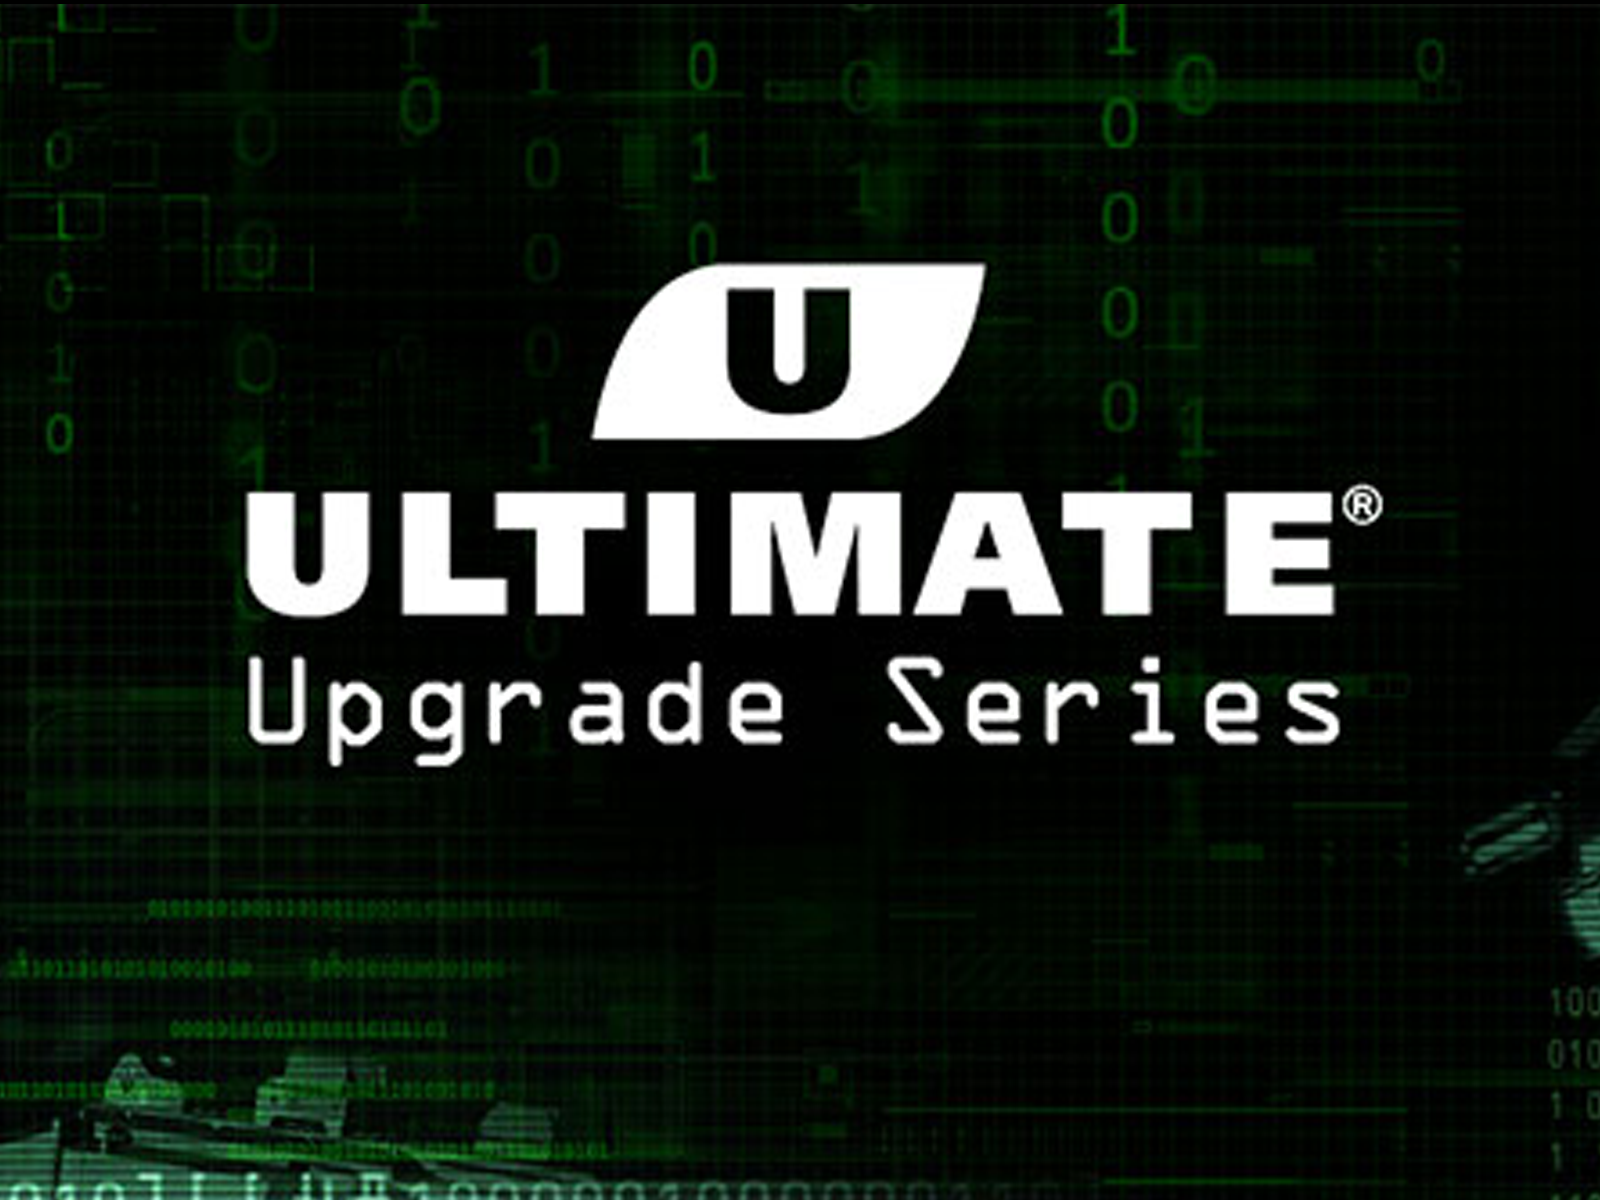 ULTIMATE UPGRADE SERIES